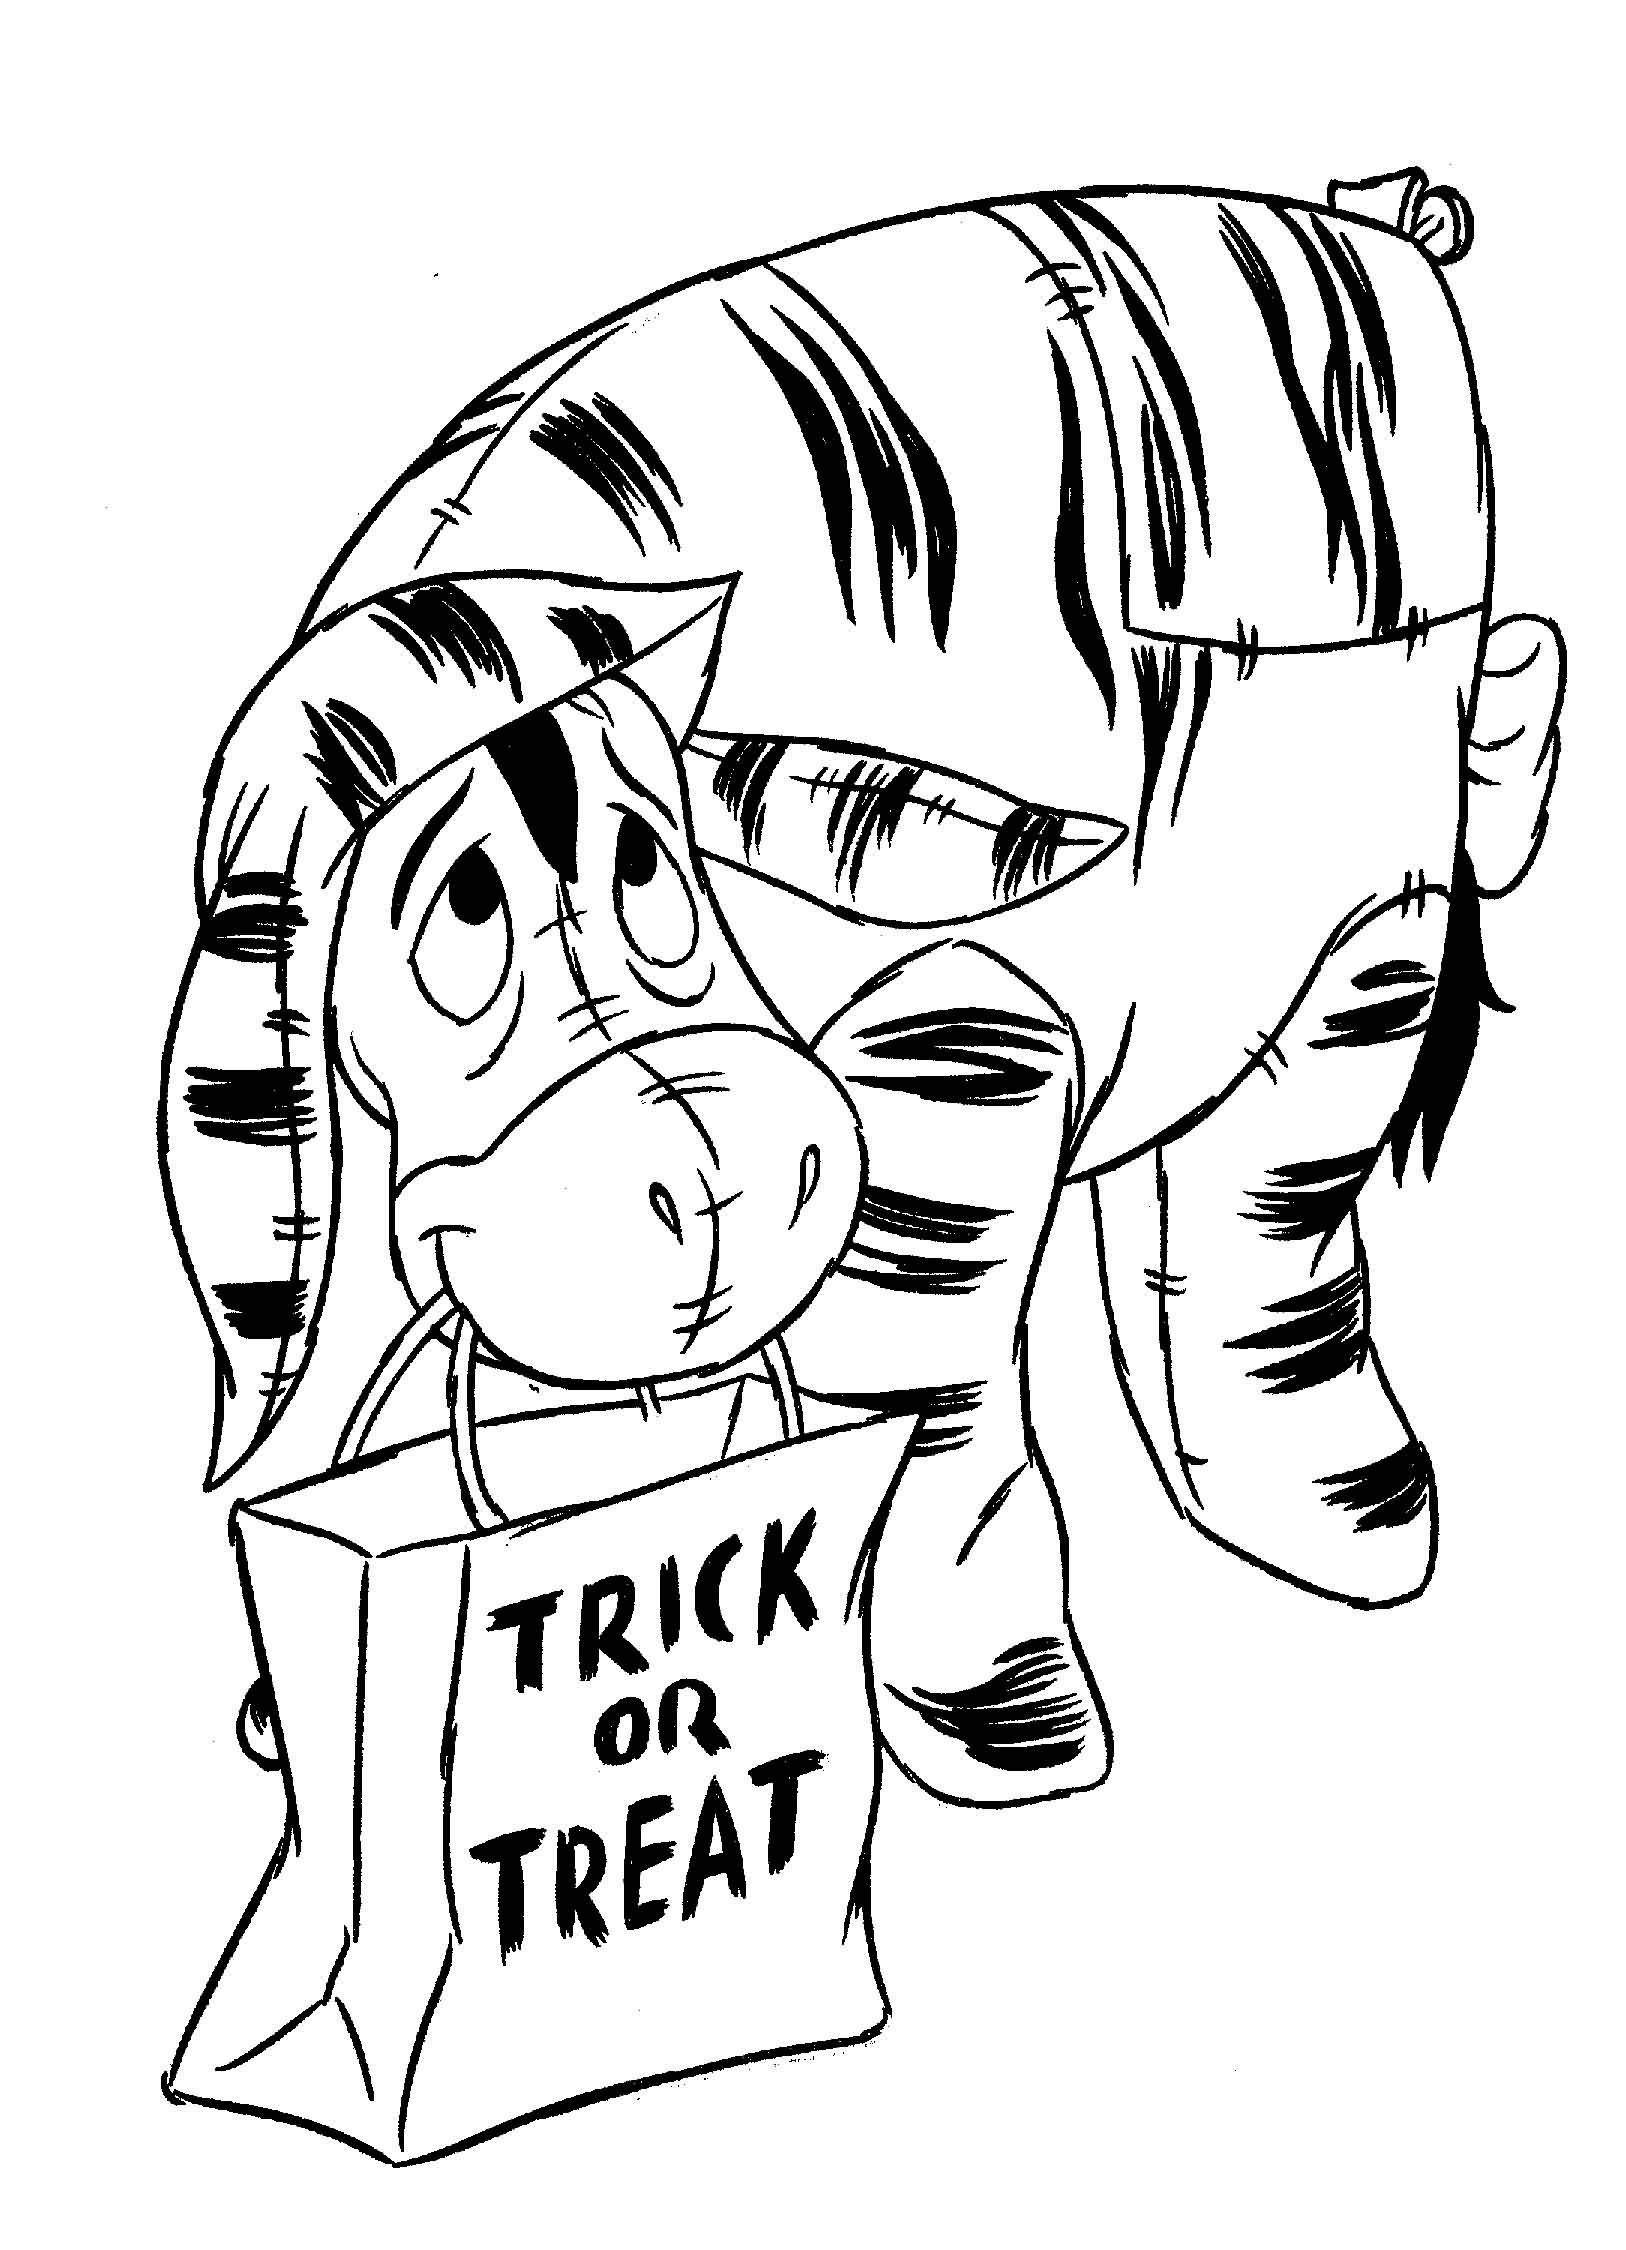 cartoon network halloween coloring pages - photo#10